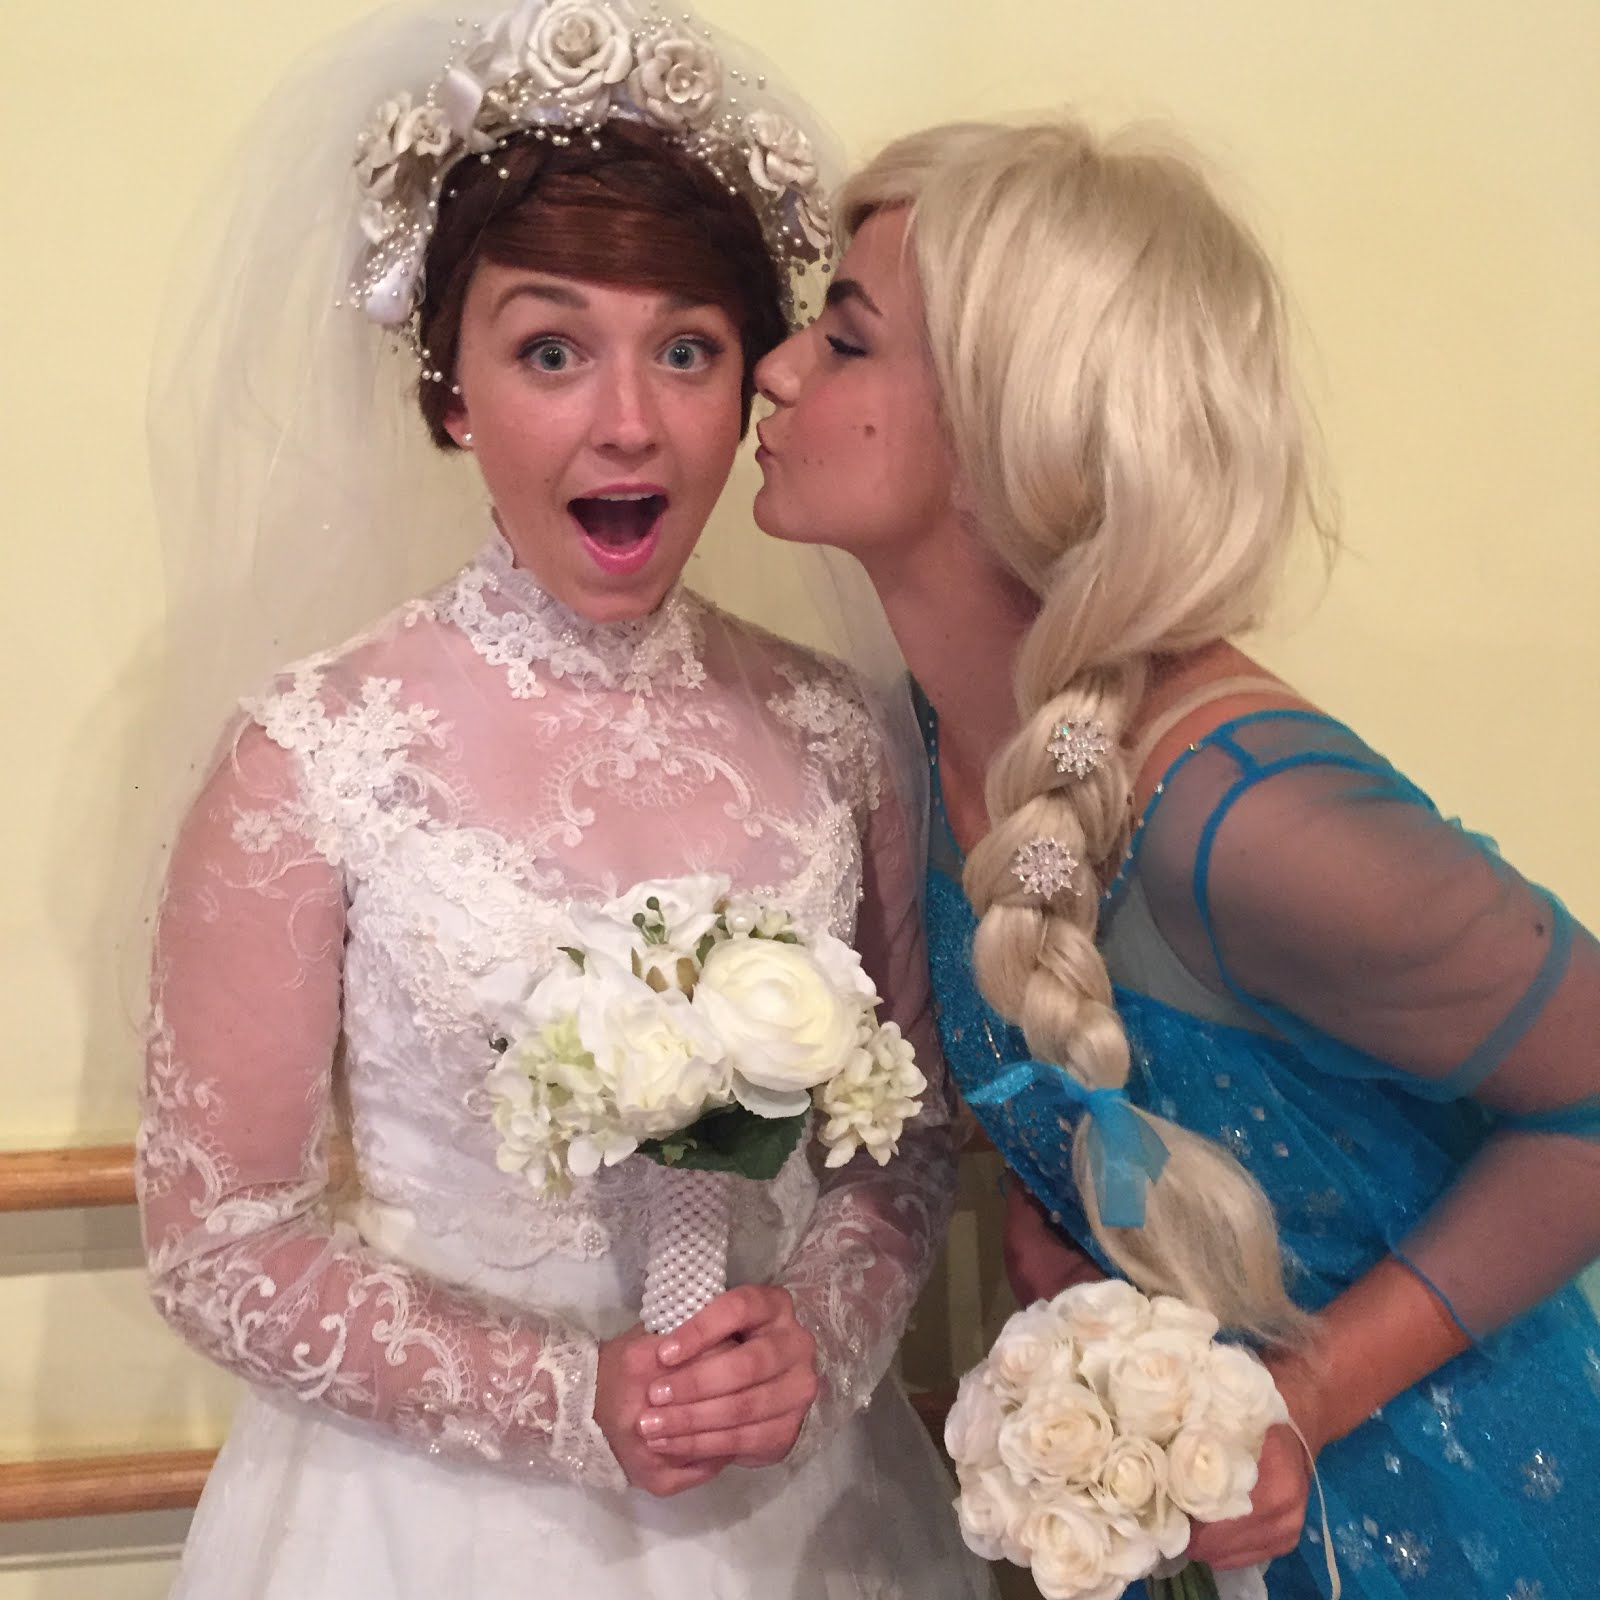 Anna marries Kristoff!